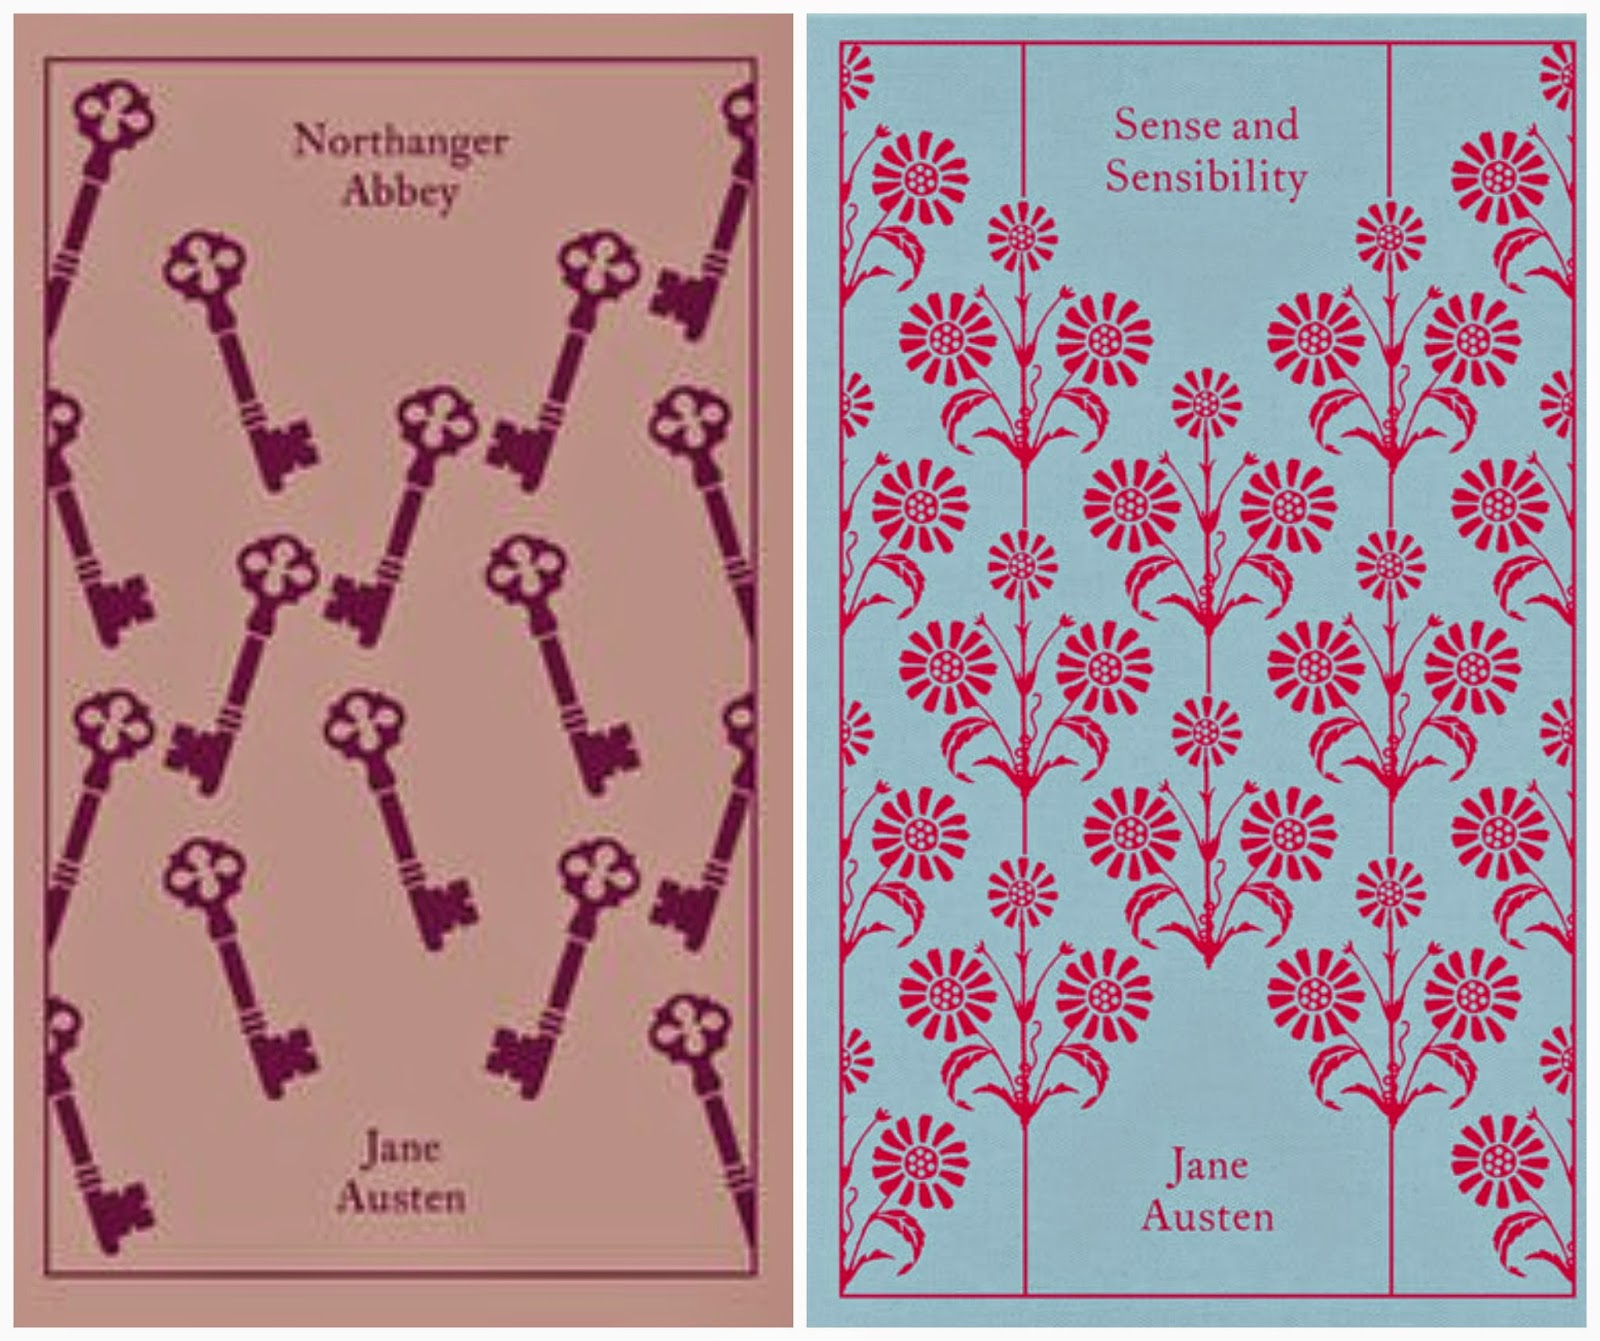 Northanger Abbey and Sense & Sensibility Book Covers